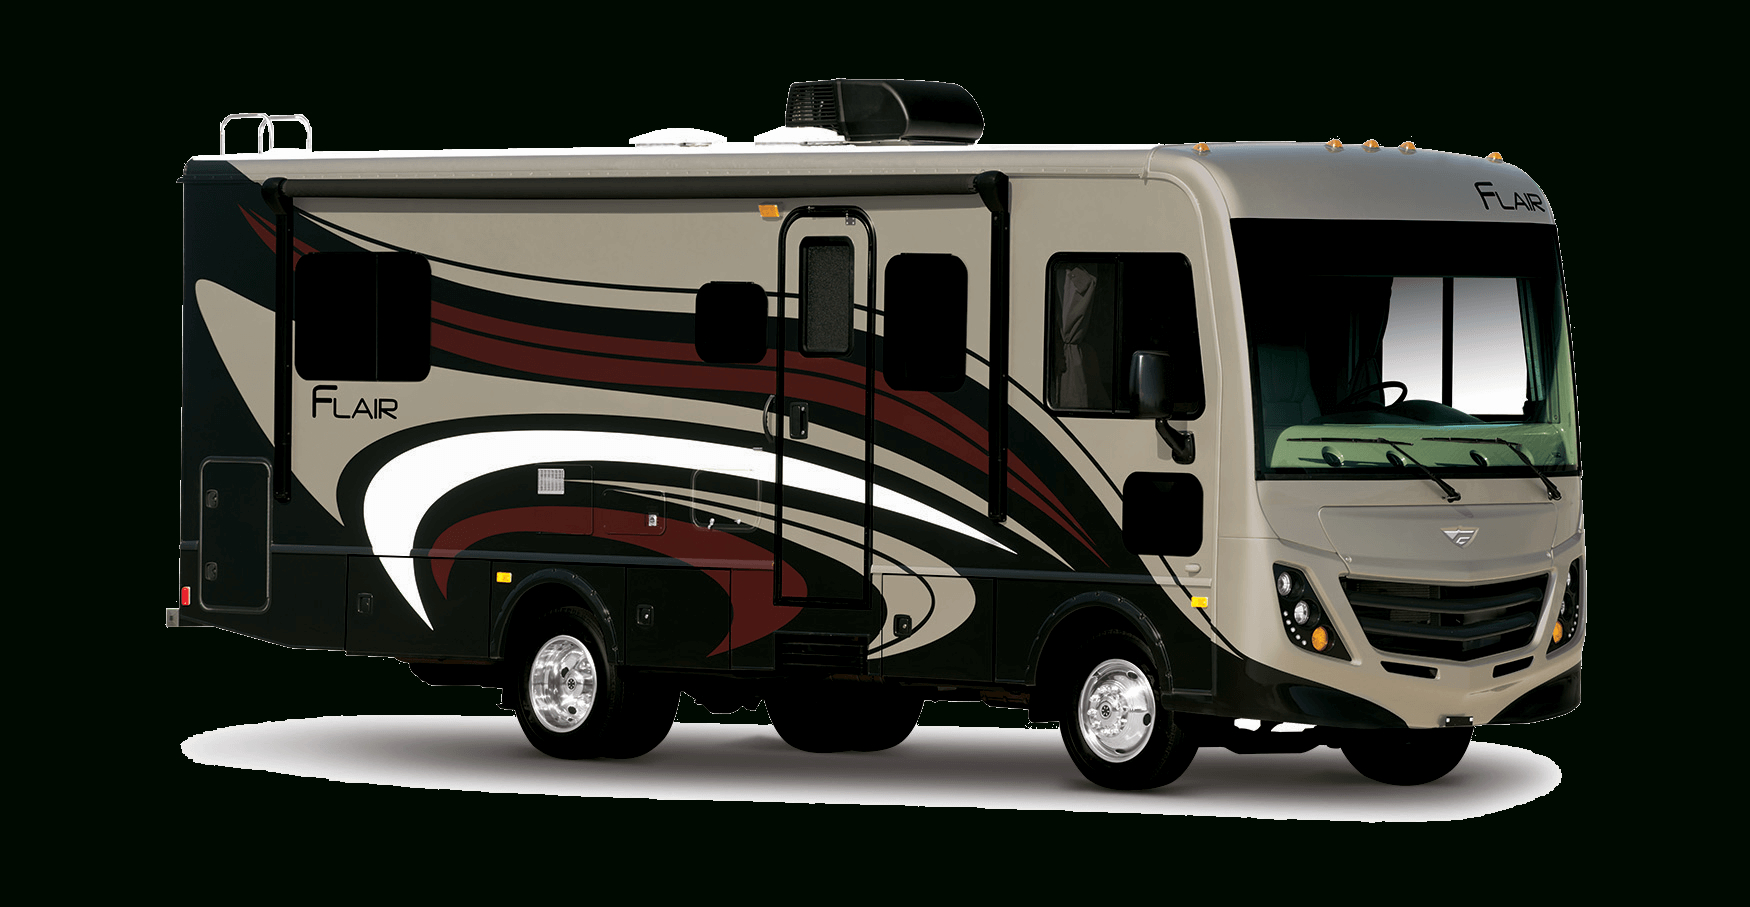 Fleetwood Flair Class A Motorhome - Rv Slide Out Switch Wiring Diagram